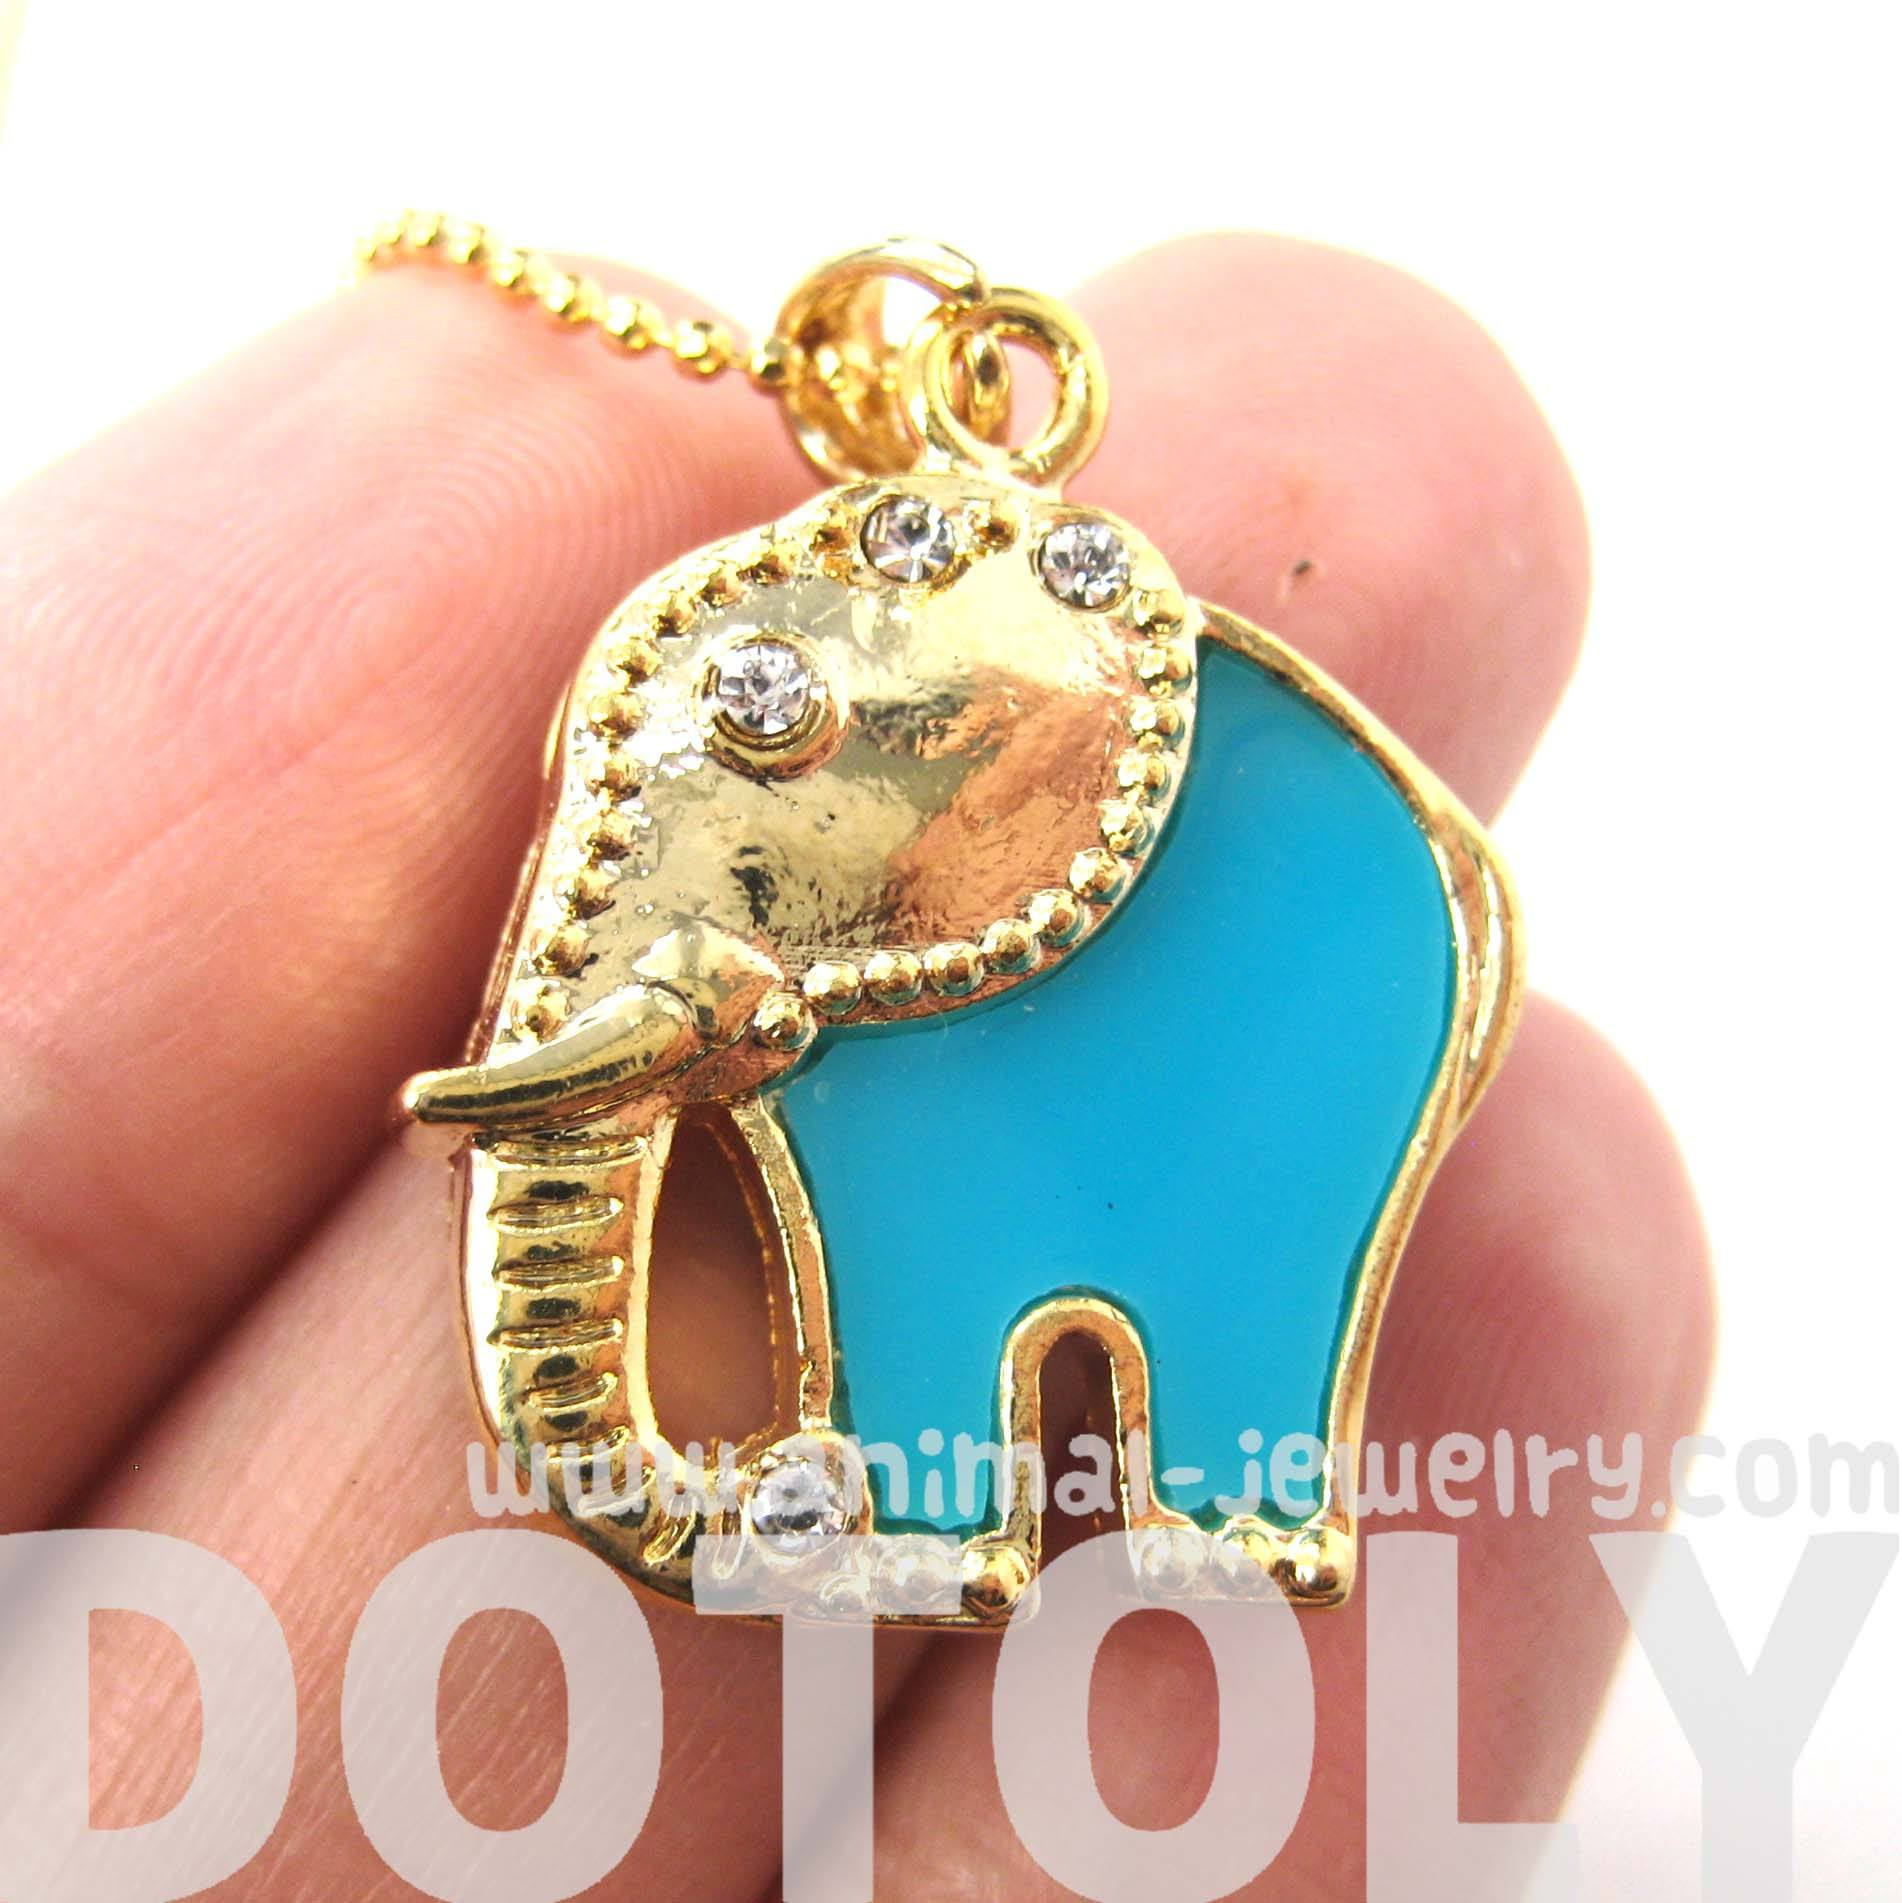 abstract-elephant-animal-pendant-necklace-in-gold-and-turquoise-dotoly